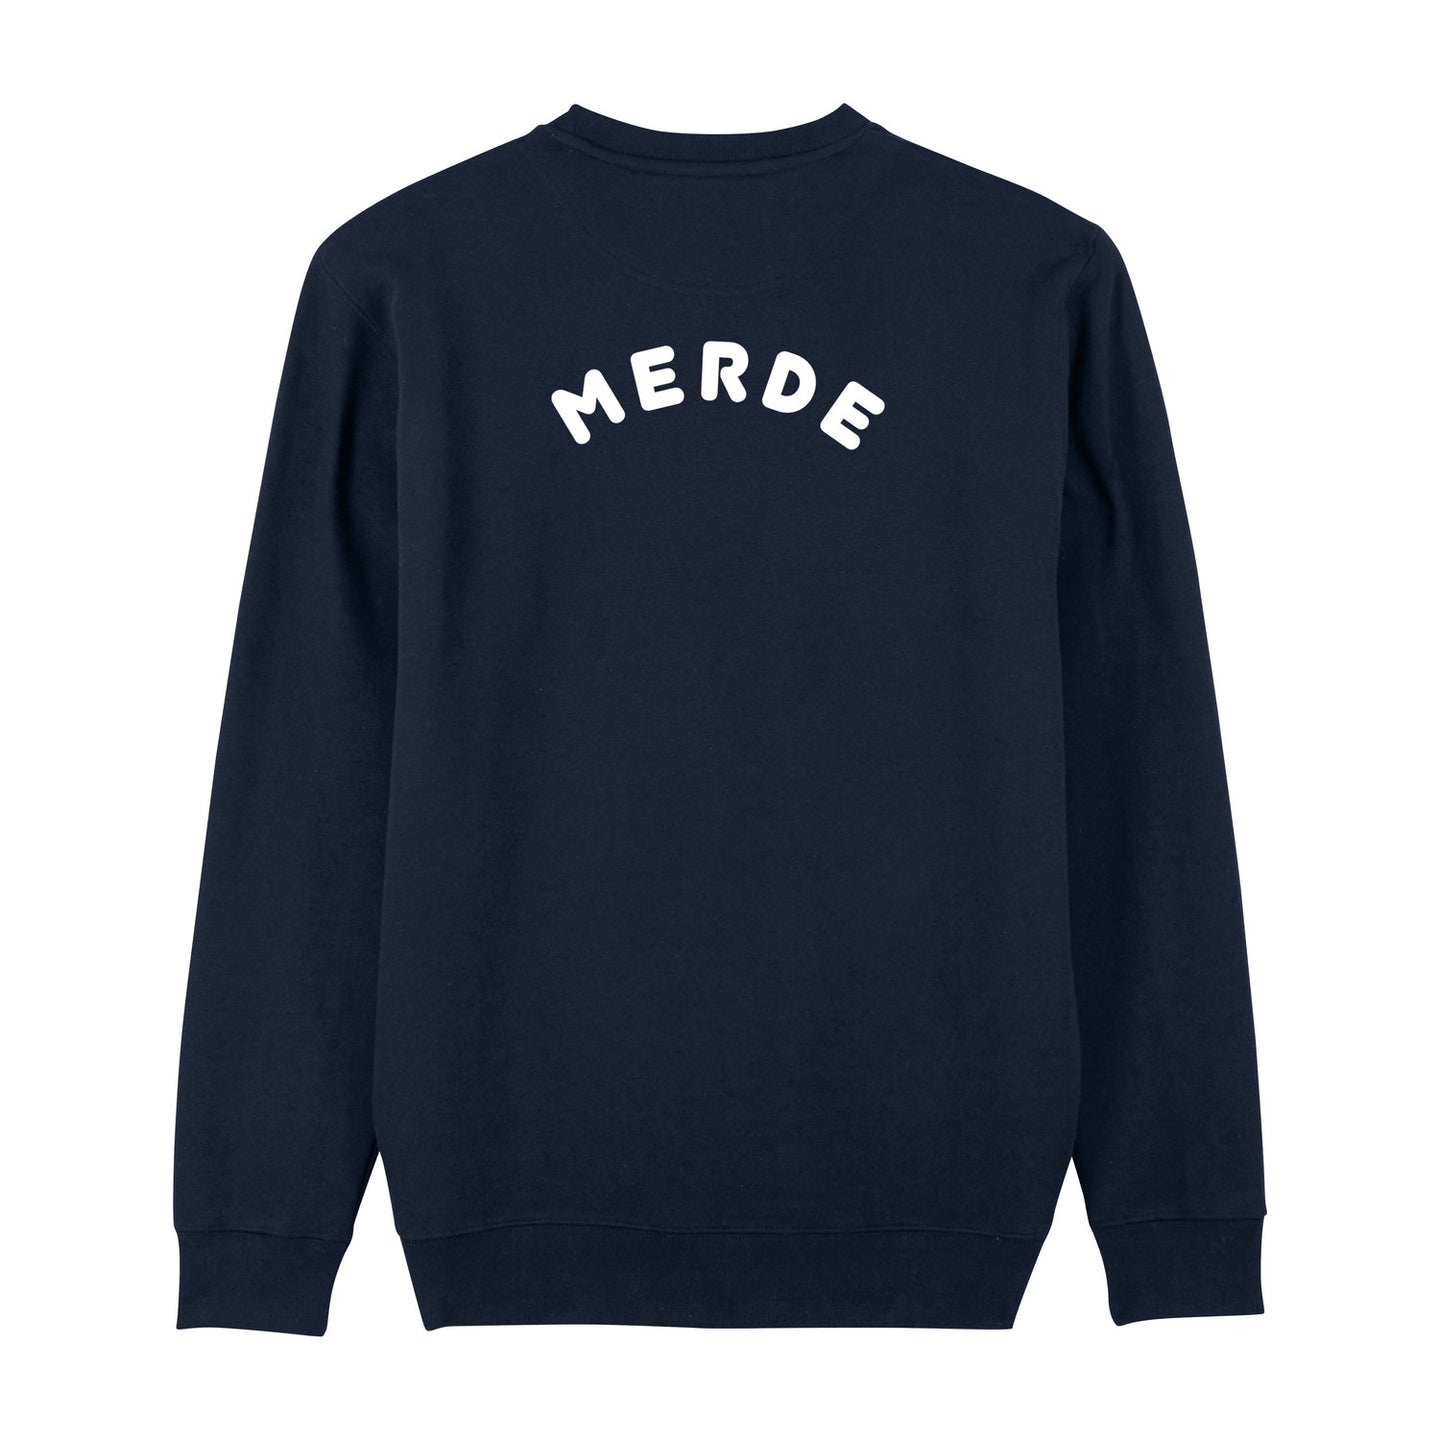 Organic Cotton Merde Jumper by French Kiss at Natural x Lab, Sustainble Luxury